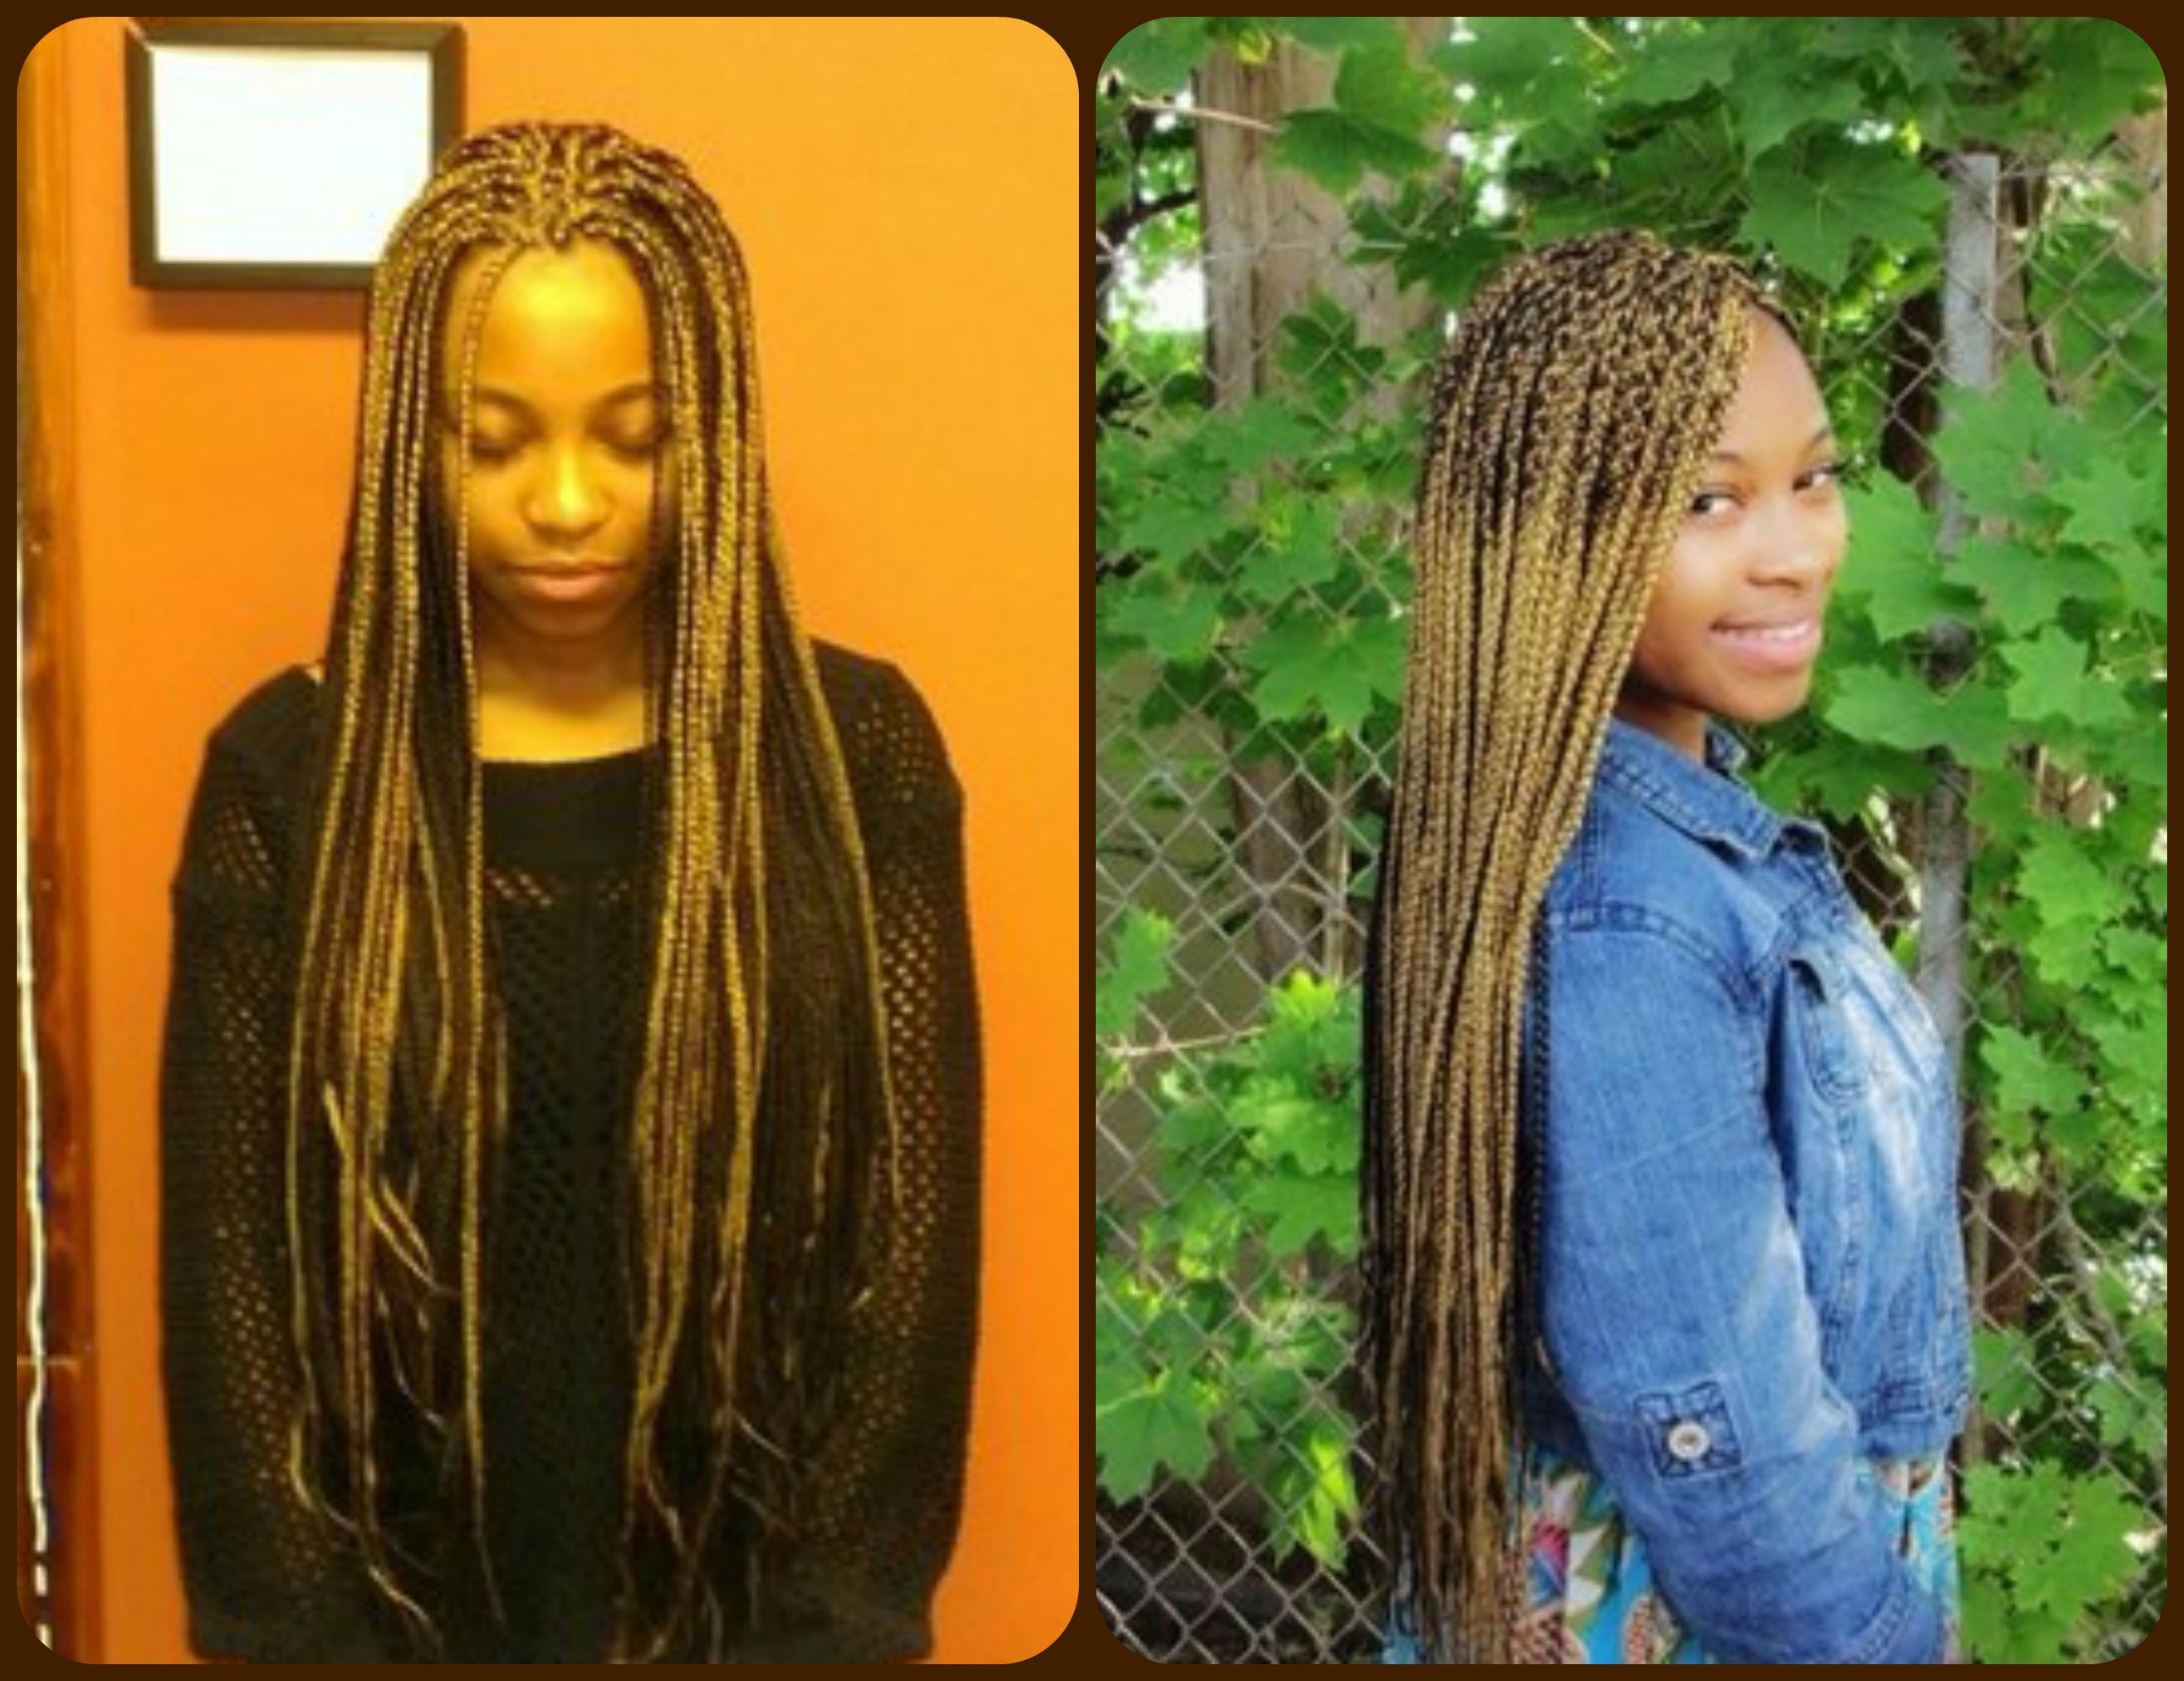 Crochet Braids New Jersey : Search Results for ?Crochet Braids New Jersey? - Black Hairstyle ...